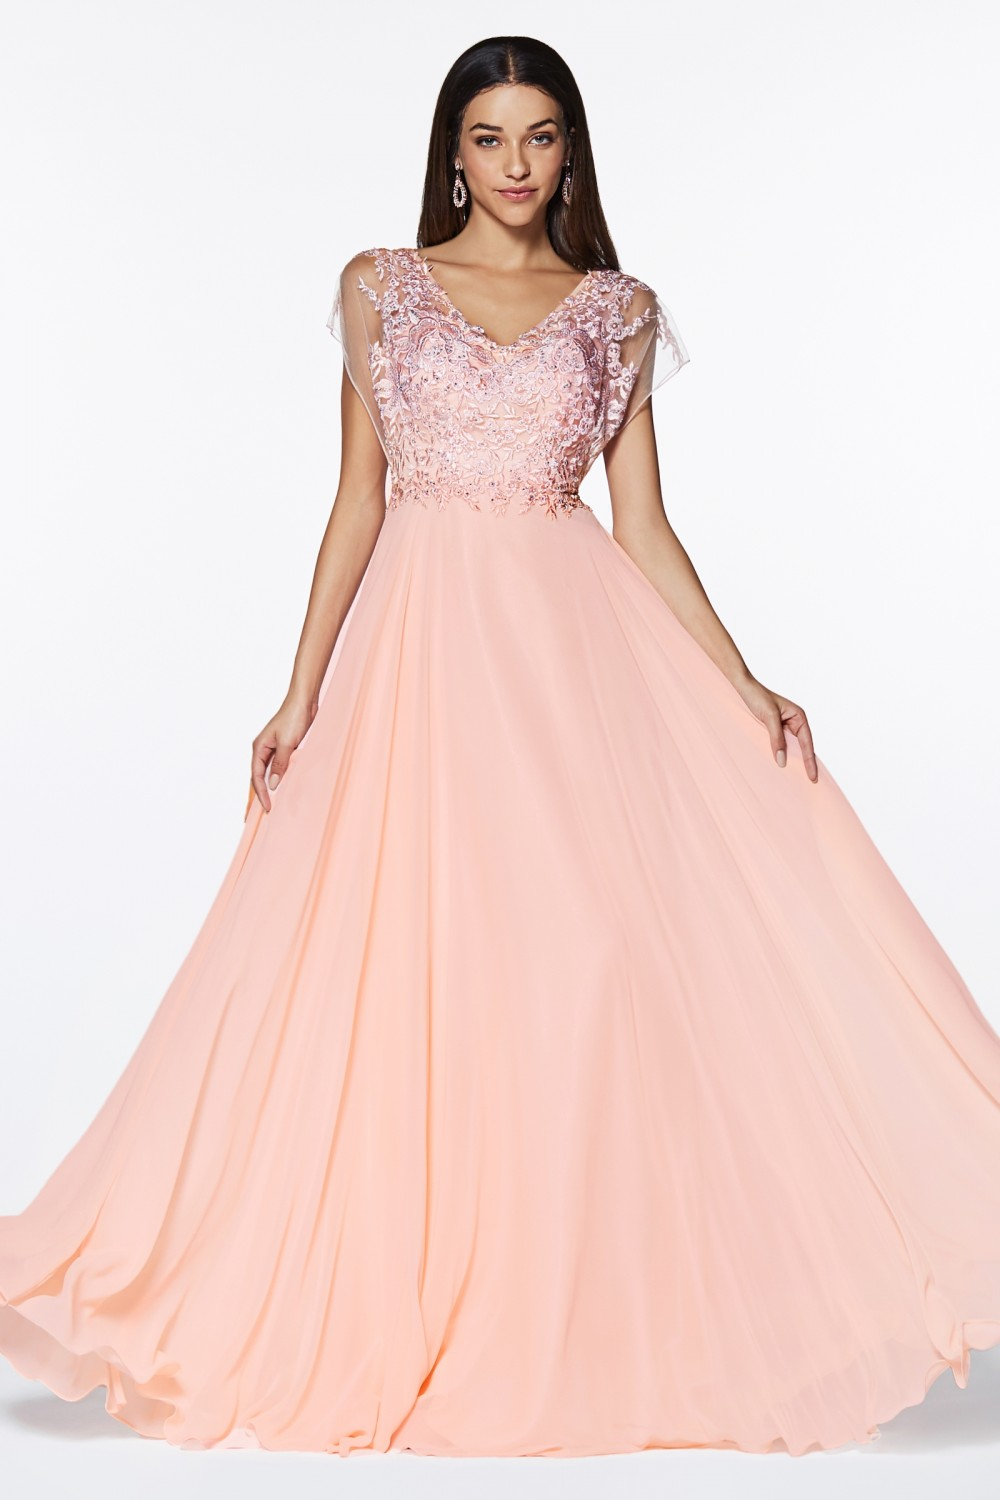 Blush A-line chiffon gown with lace bodice and flutter sleeve.